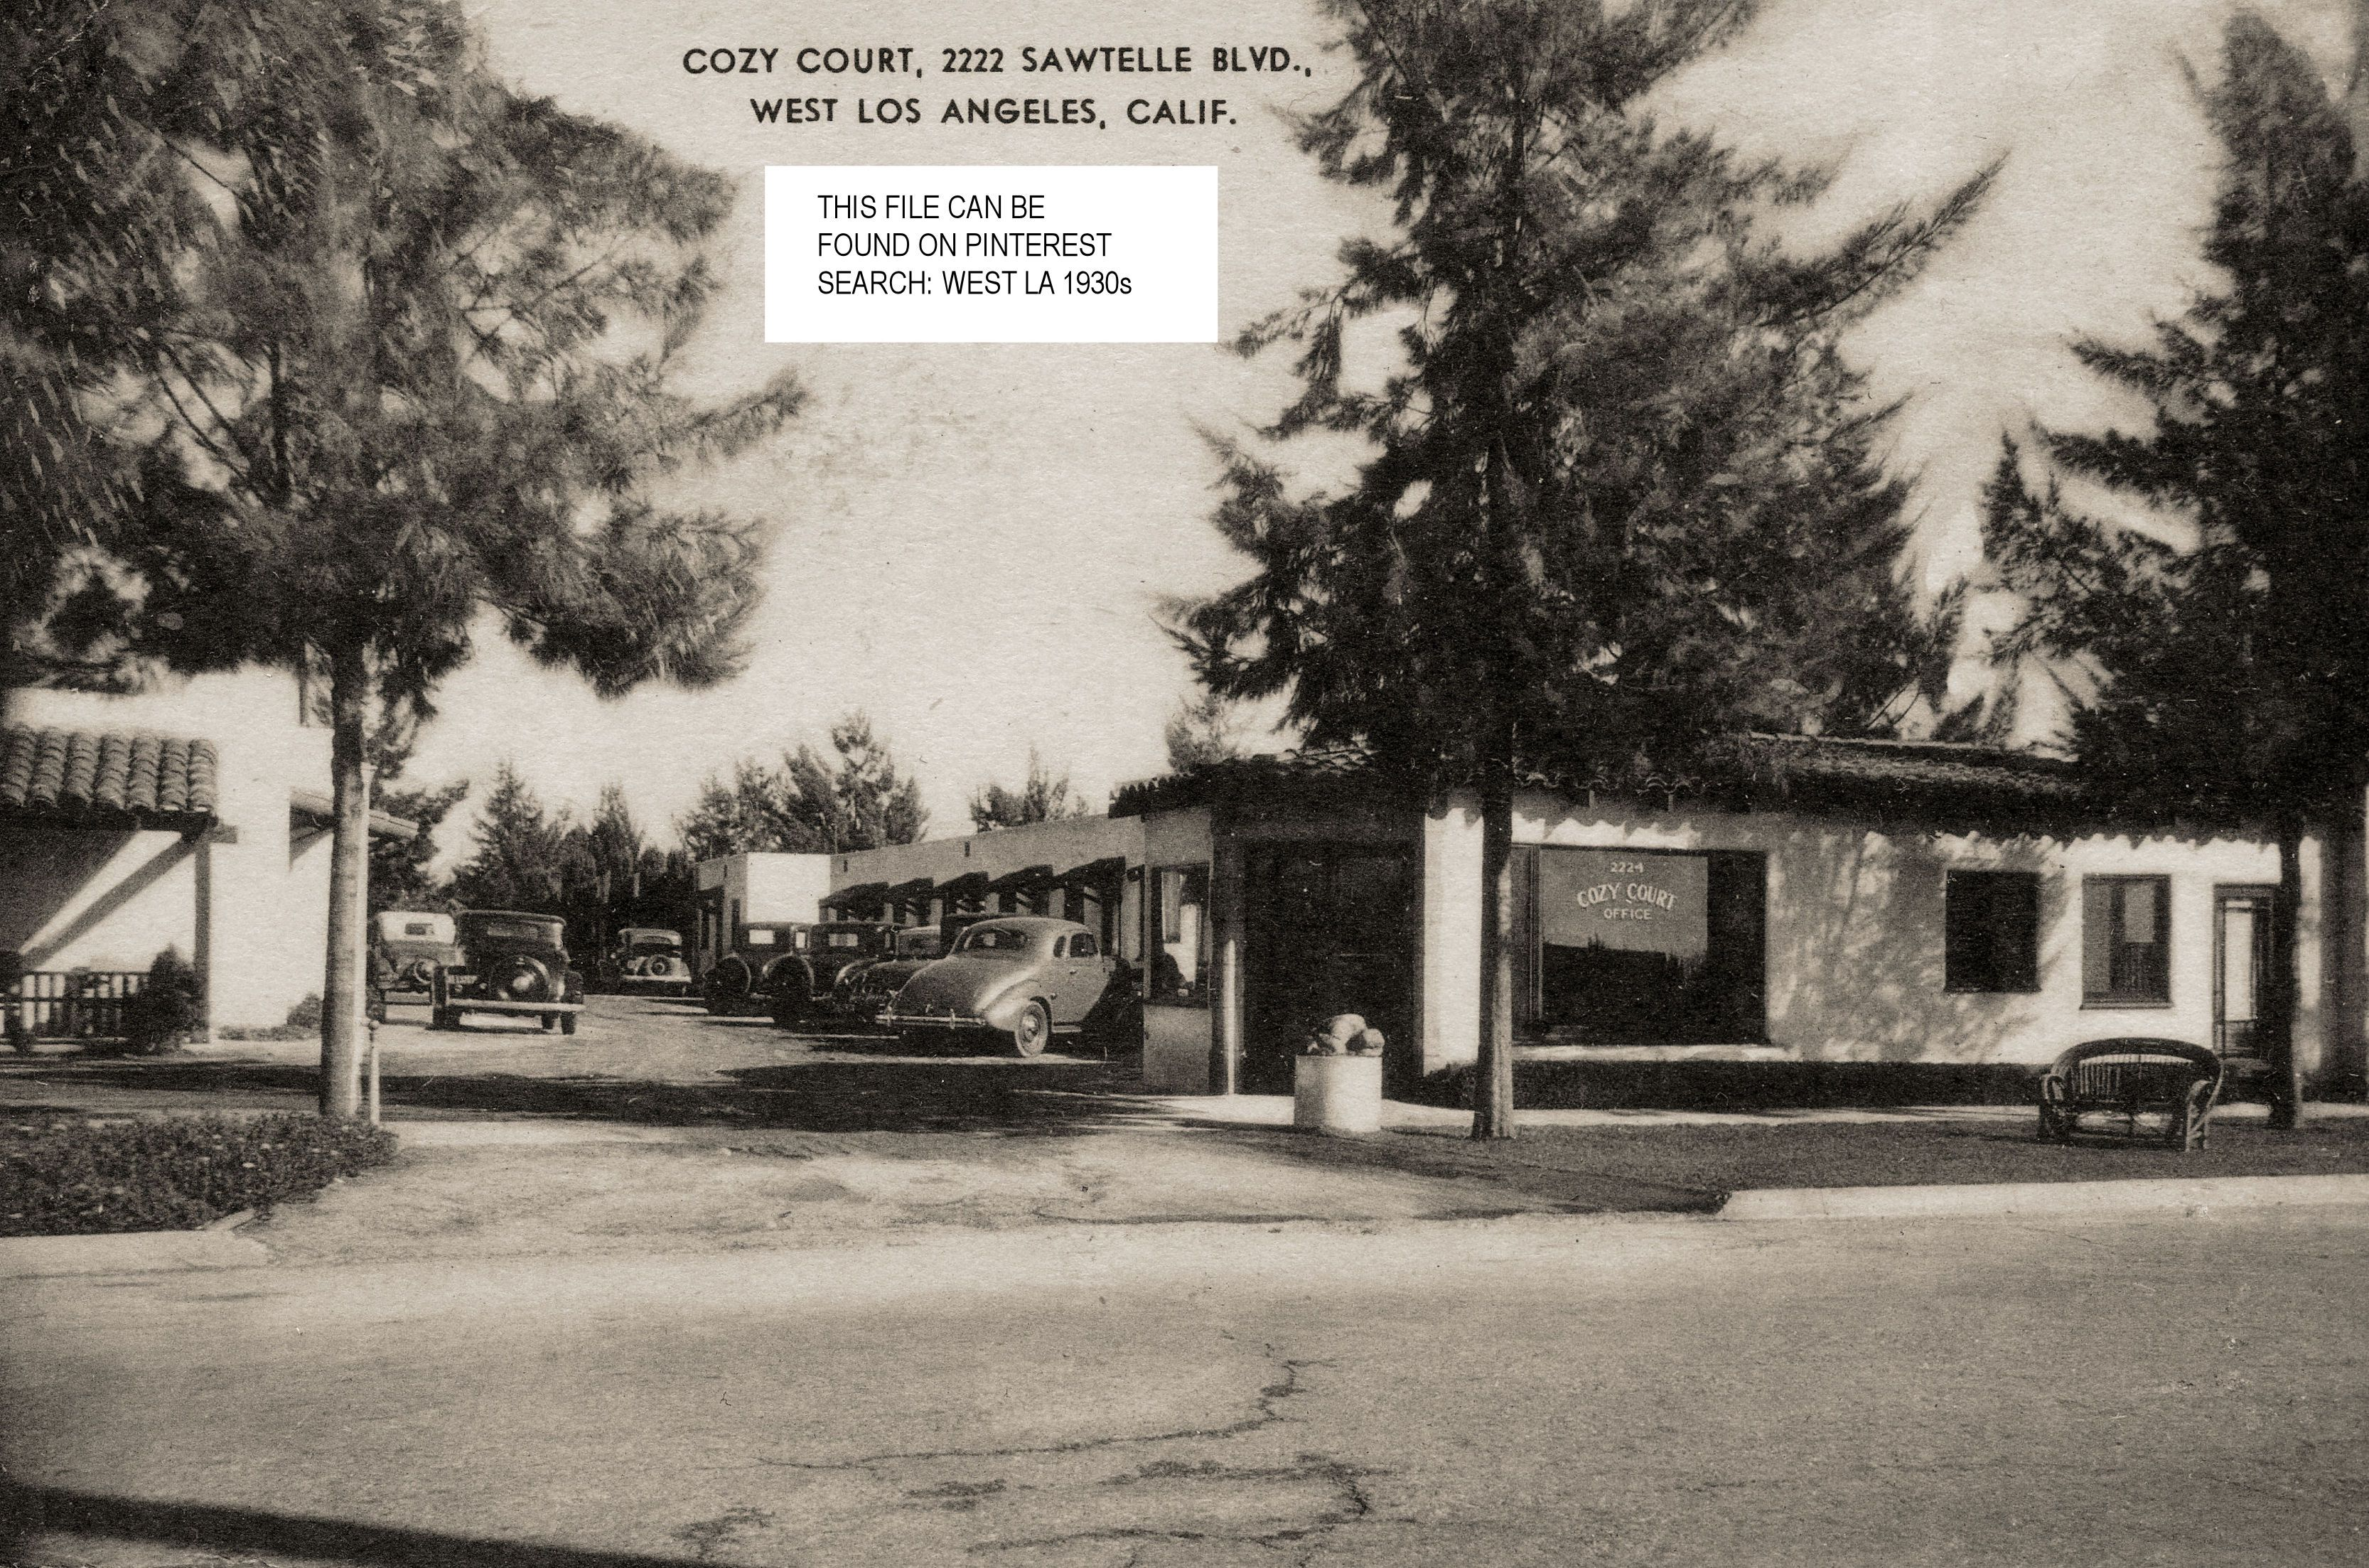 Cozy Court Located At 2222 Sawtelle Blvd In West La This Picture Is Dated 1947 The Cozy Court Was Loca Vintage Los Angeles West Los Angeles Los Angeles Area